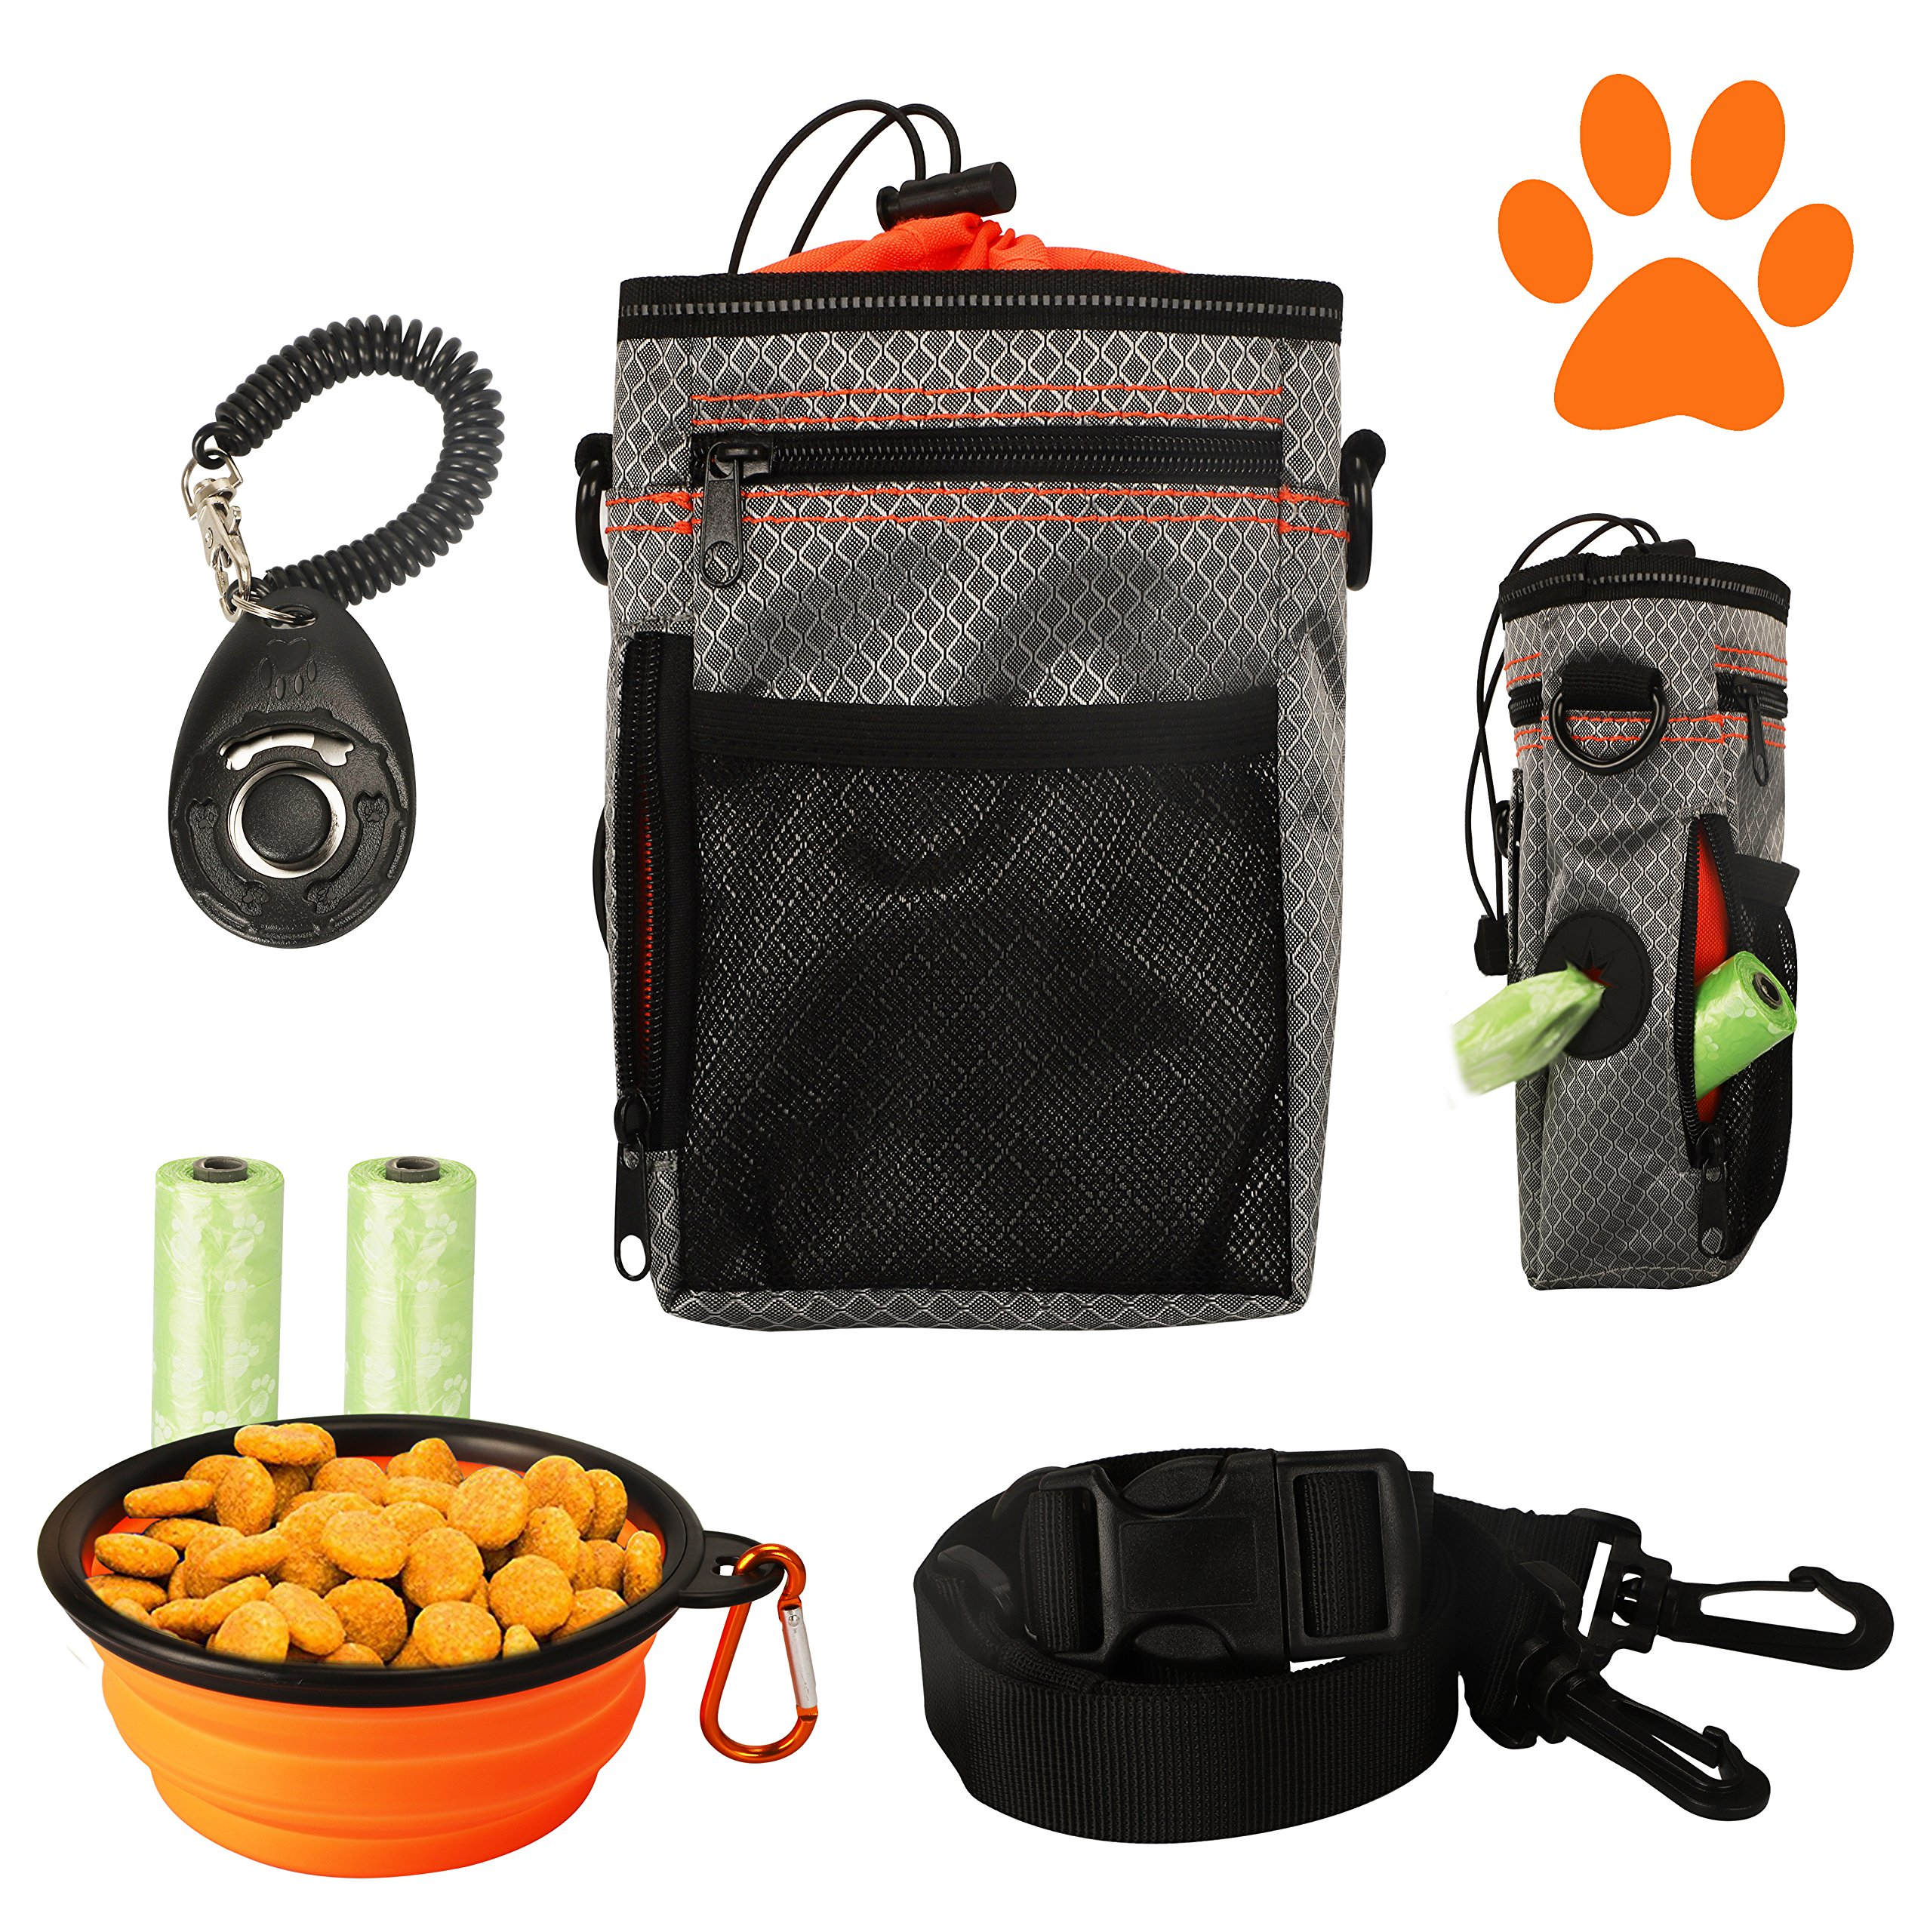 COM4SPORT Dog Treat Pouch with Built-in Waste Bag Dispenser, Adjustable Waist Belt and Over Shoulder Strap, Bonus Free Collapsible Drinking Bowl, Dog Training Clicker and Poop Bags